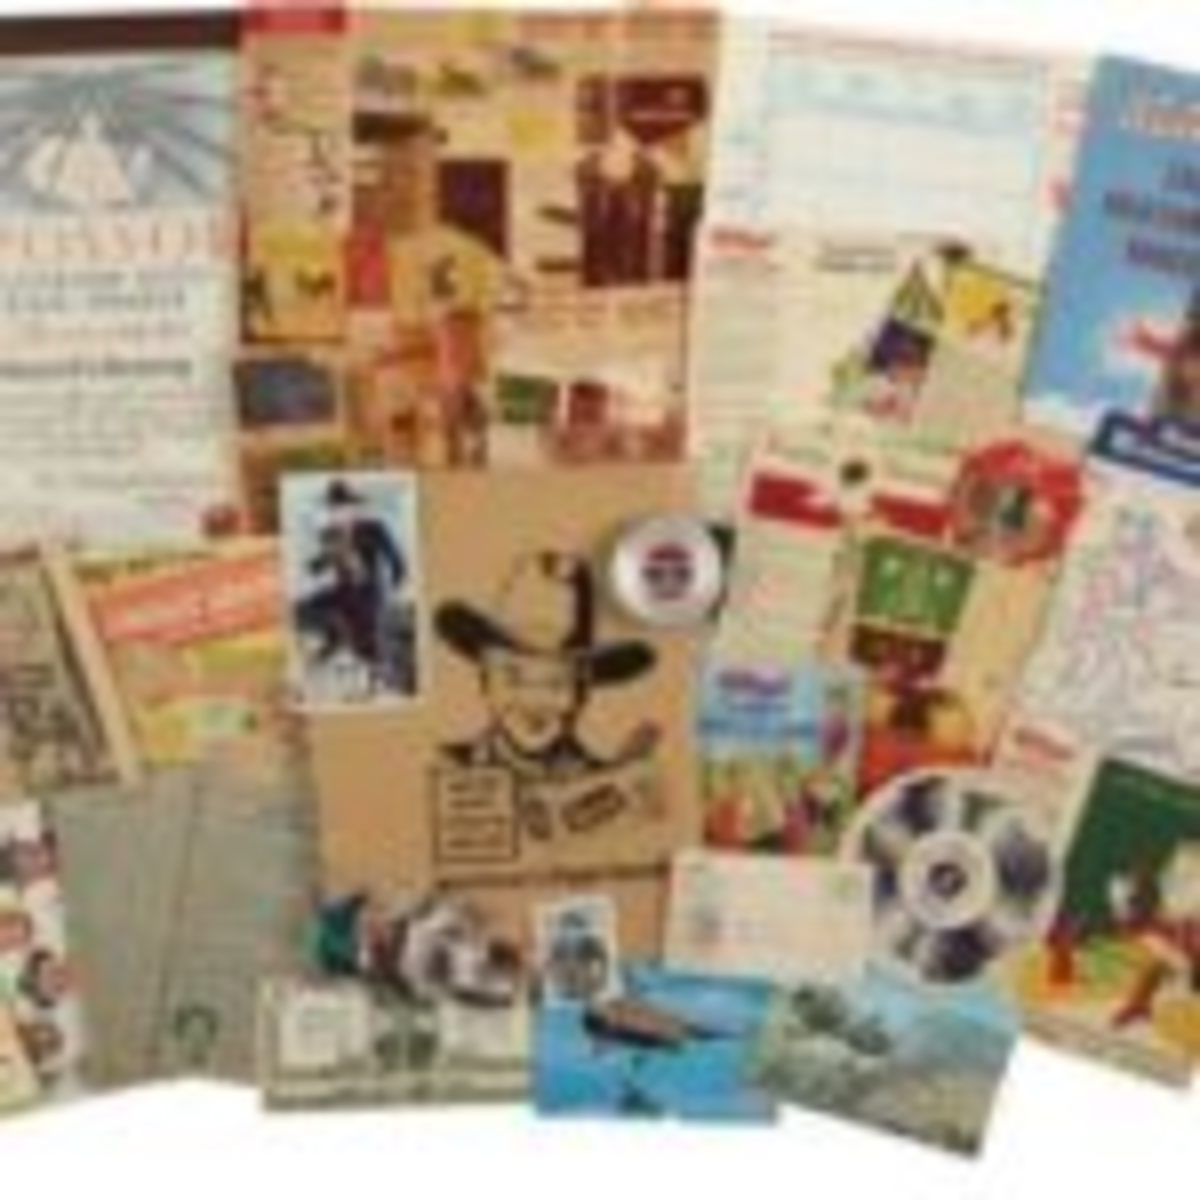 "Collection of various giveaways, box fragments, bread labels, radio mailers, and other nostalgic material, 1920s-60s. Includes Hopalong Cassidy bread labels, Tom Corbett Space Cadet Newsletter; Kellogg's Singing Lady Song Book pamphlet and box panels, illustrated by Vernon Grant; a Wheaties Hike-o-Meter pedometer, in VG+ condition; Kellogg's Cadet Aviation Corps Handbook from 1938, in FN; several Cheerios and Quaker Puffed Rice box log cabins, unpunched from box panels; Kellogg's Funny Jungleland Moving Pictures booklet from 1932 (second version, approximately 4 1/2"" x 6 1/2"", not the larger later reissue); a 1924 Post Toasties four-page booklet; a 1930s-era sponsor award for Scattergood Baines, given to grocery stores by Wrigley's, and more. Sold for $89.63. Courtesy of Heritage Auctions"